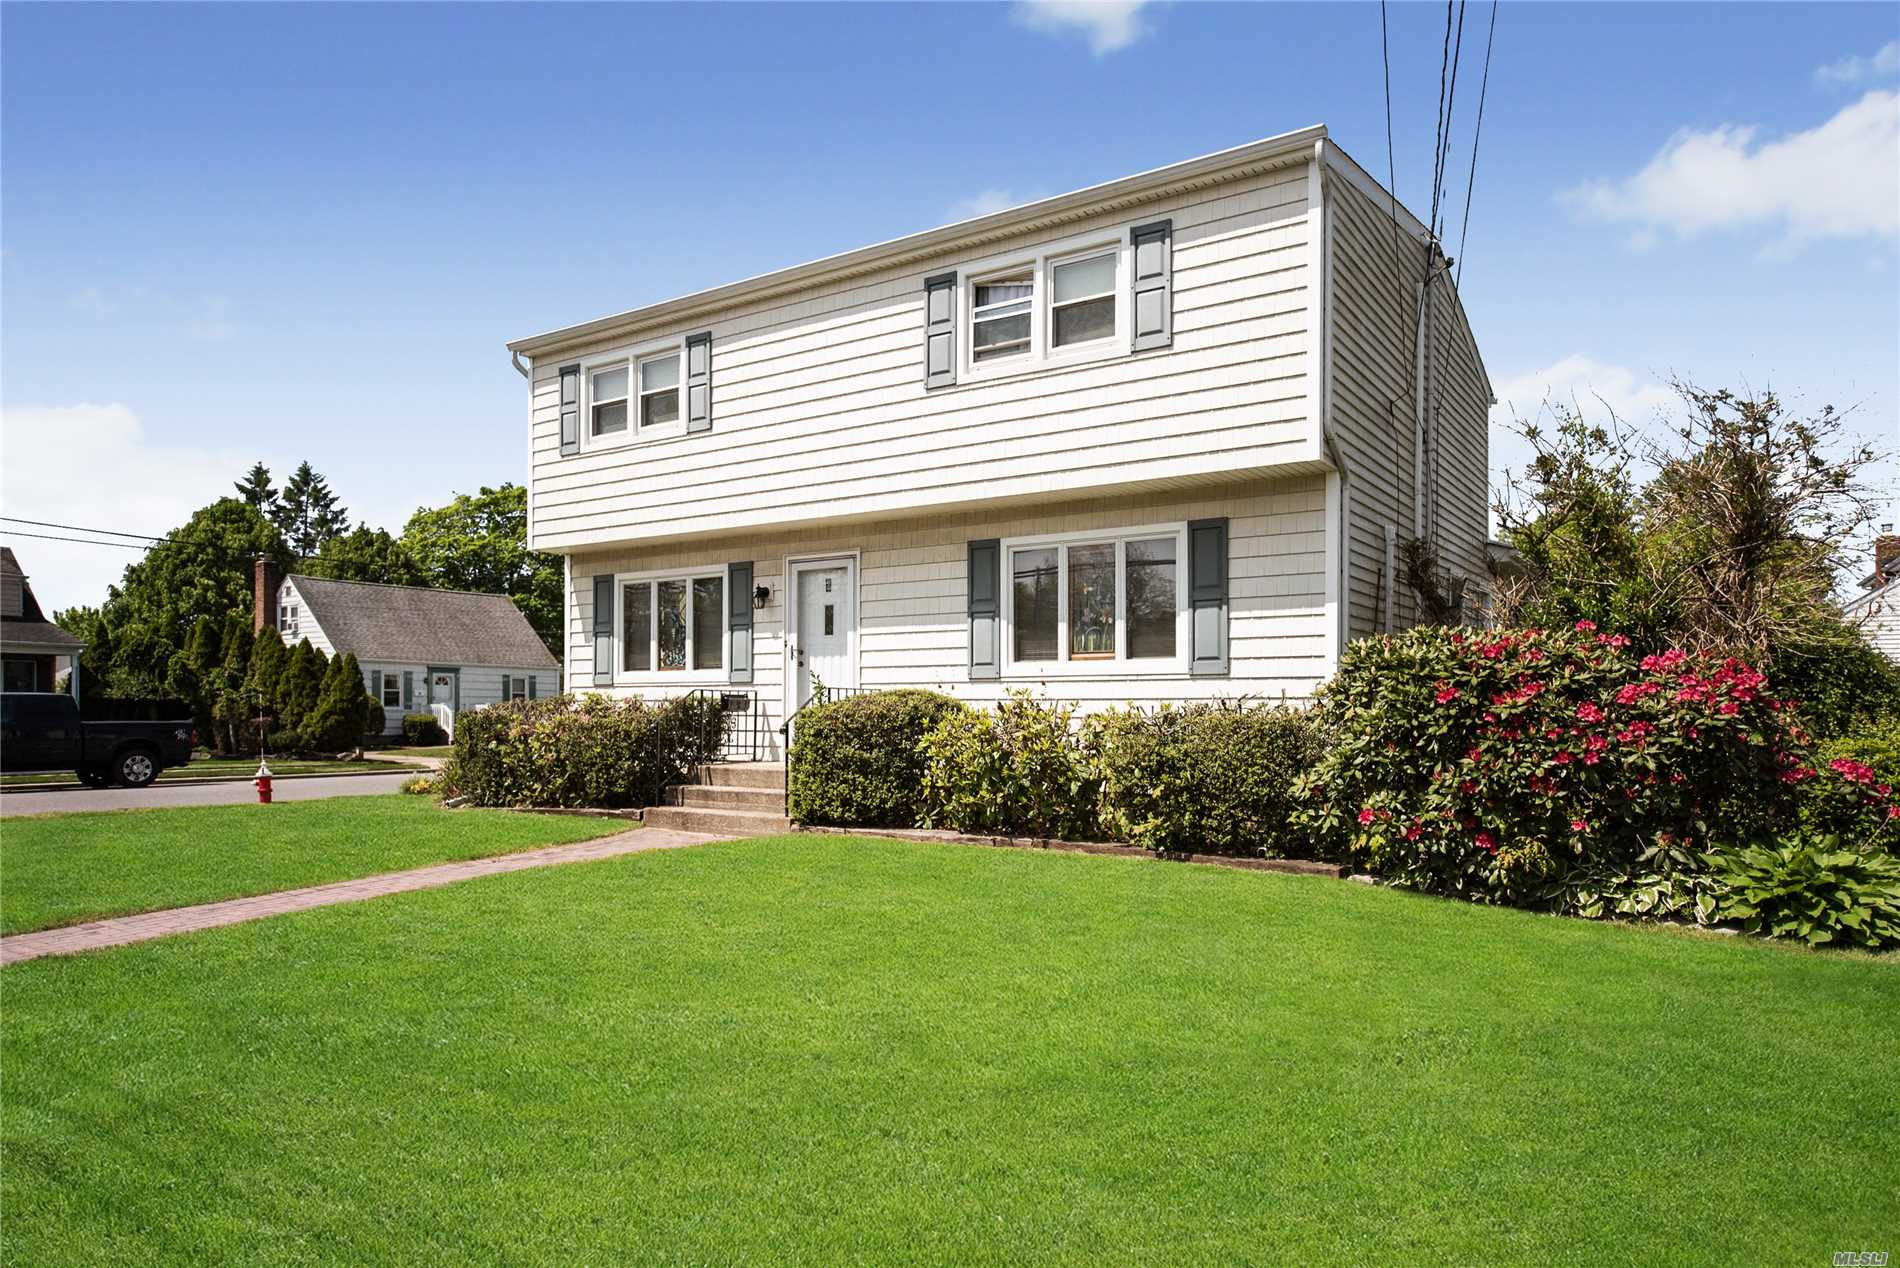 4 Bedroom, 2 Bath Large Colonial Situated on a Beautiful Private Court.  Very Large Master Bedroom, Formal Dining Room, Living Room, Family Room, Finished Basement, Bethpage Schools.